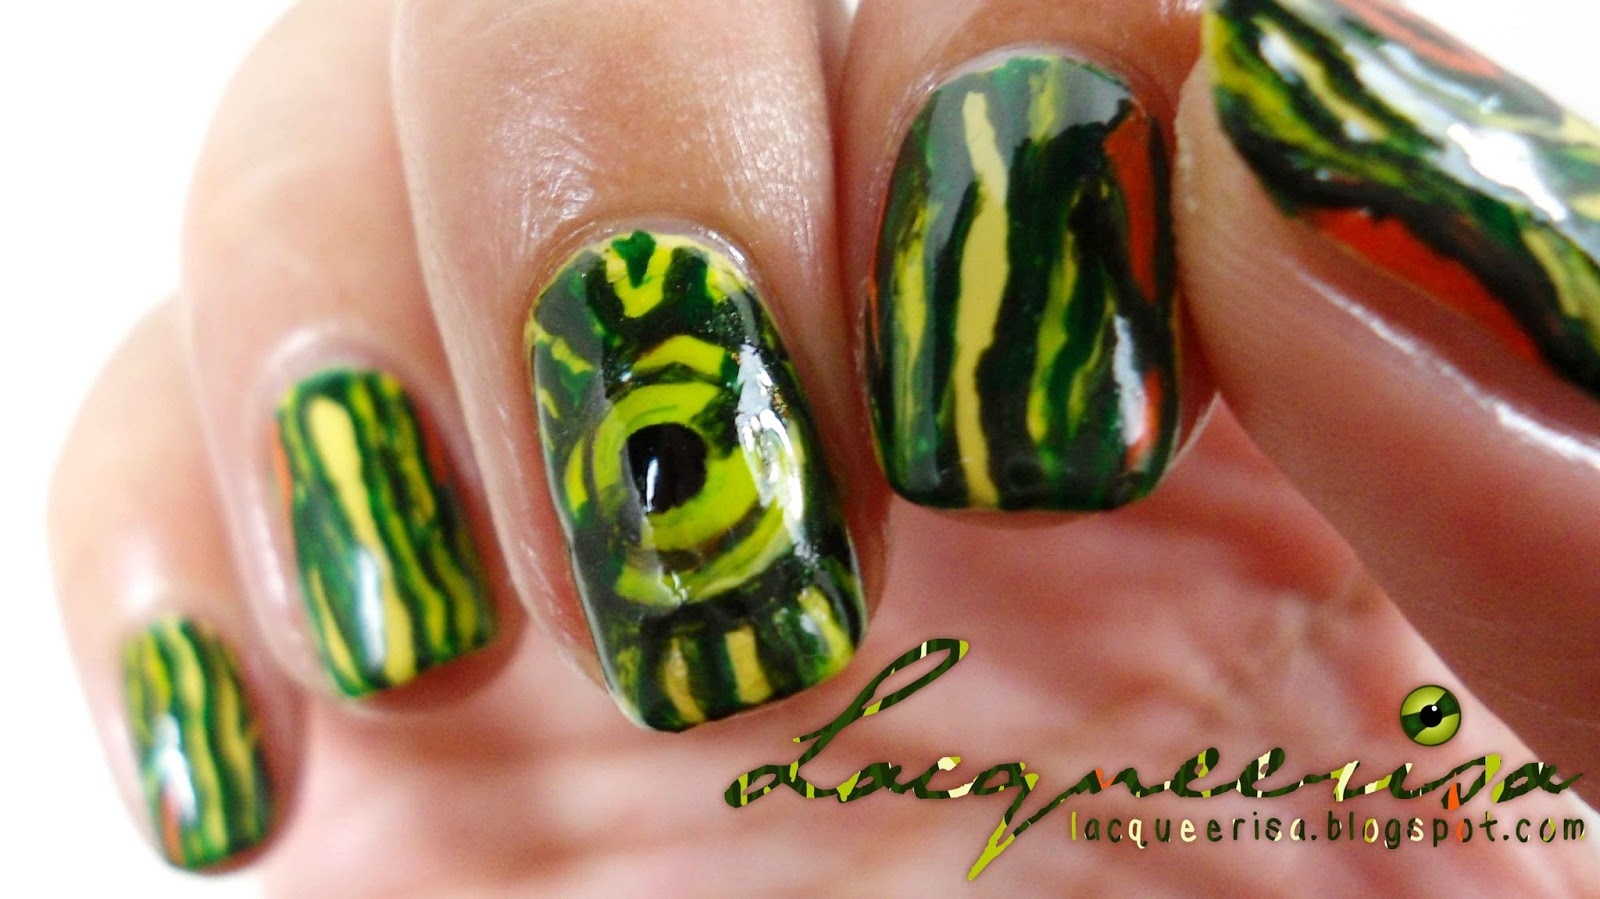 Lacqueerisa: Red-Eared Slider Inspired Nails